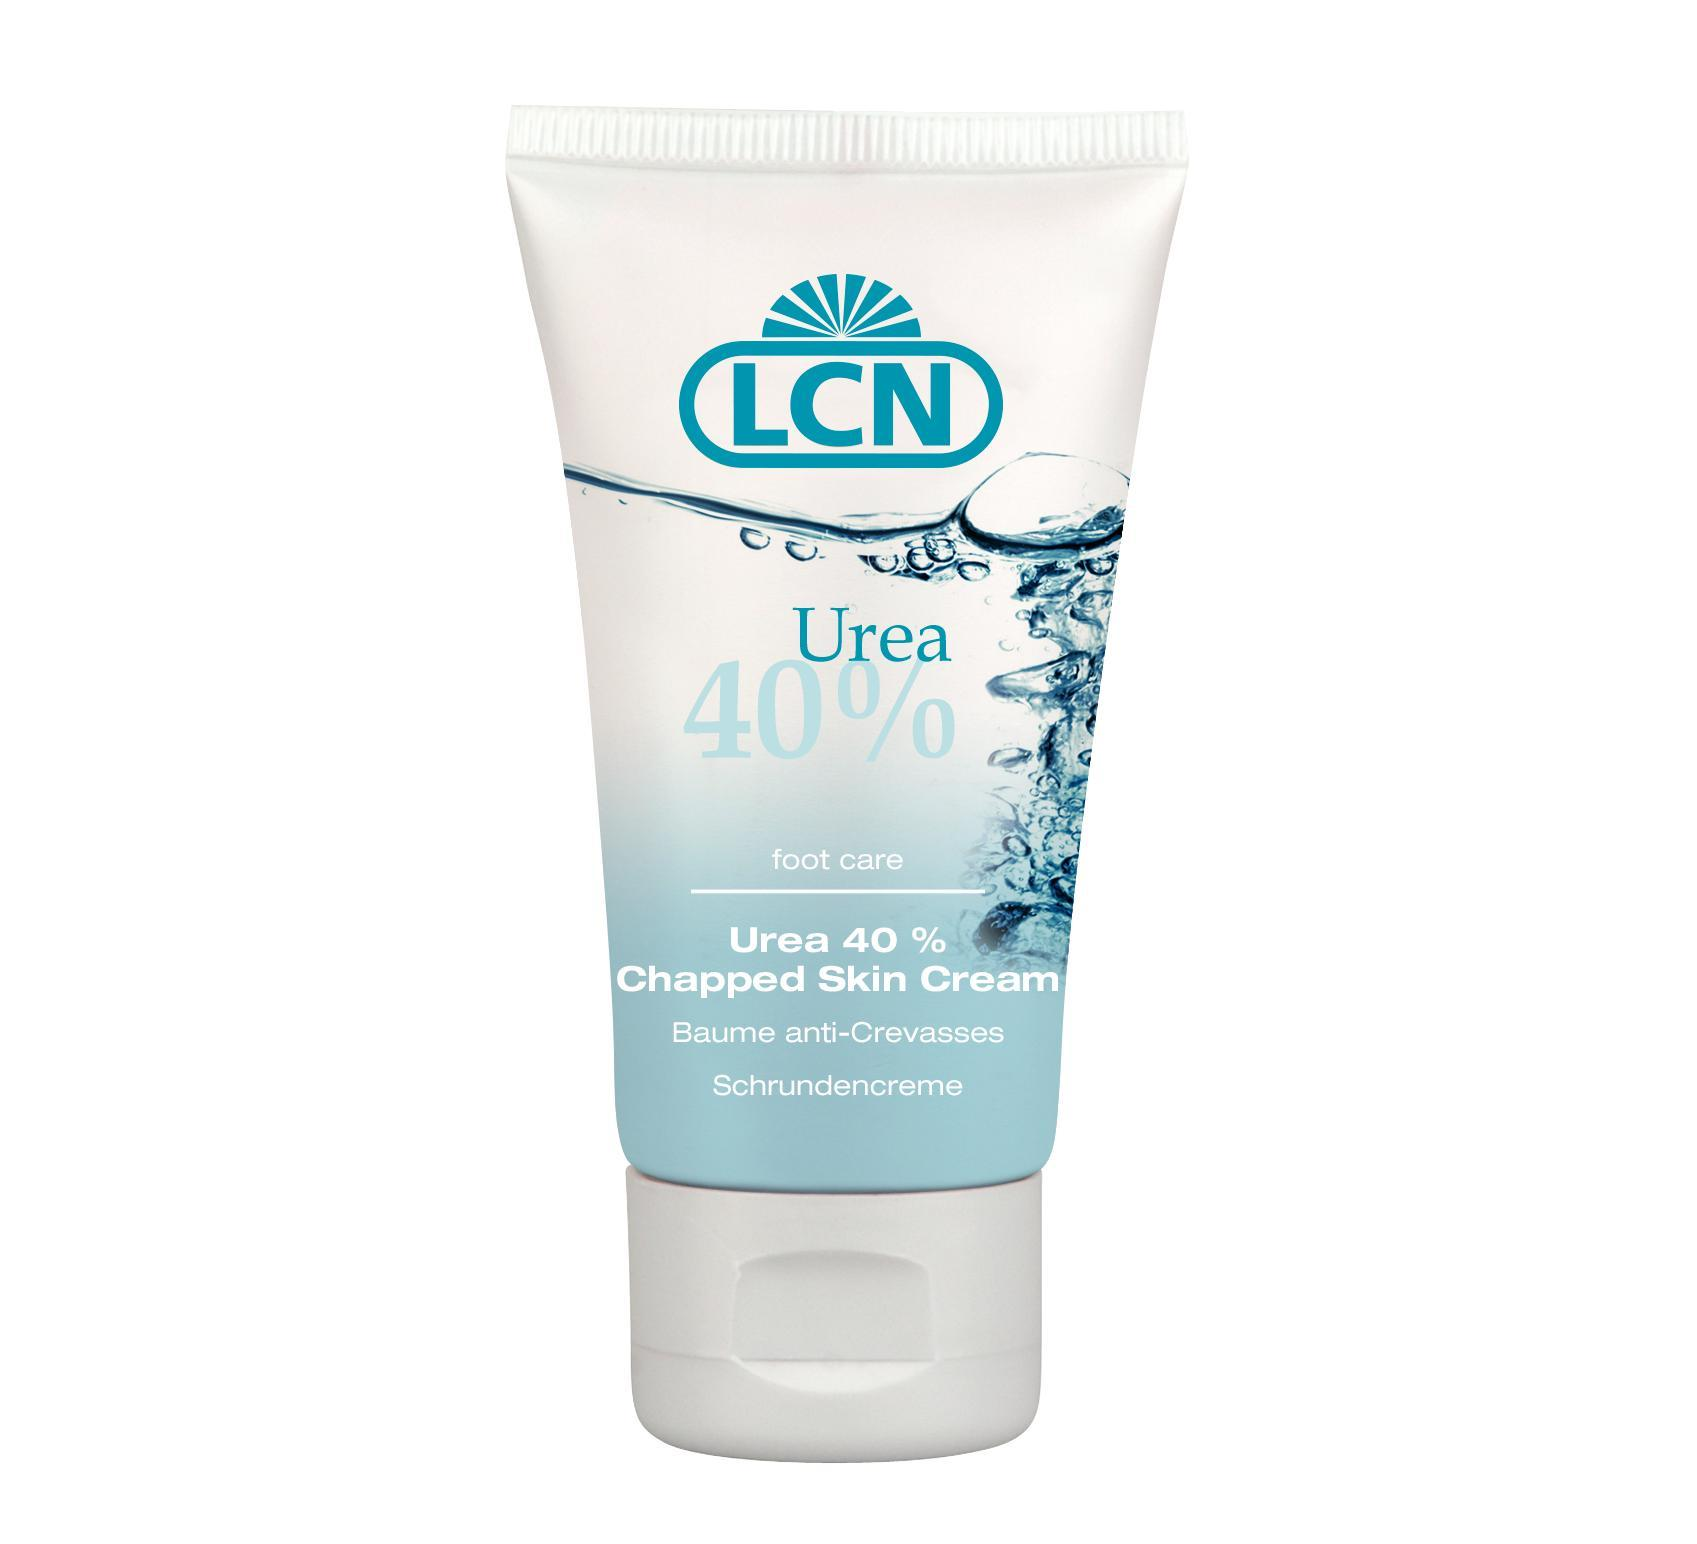 Urea 40% Chapped Skin Cream